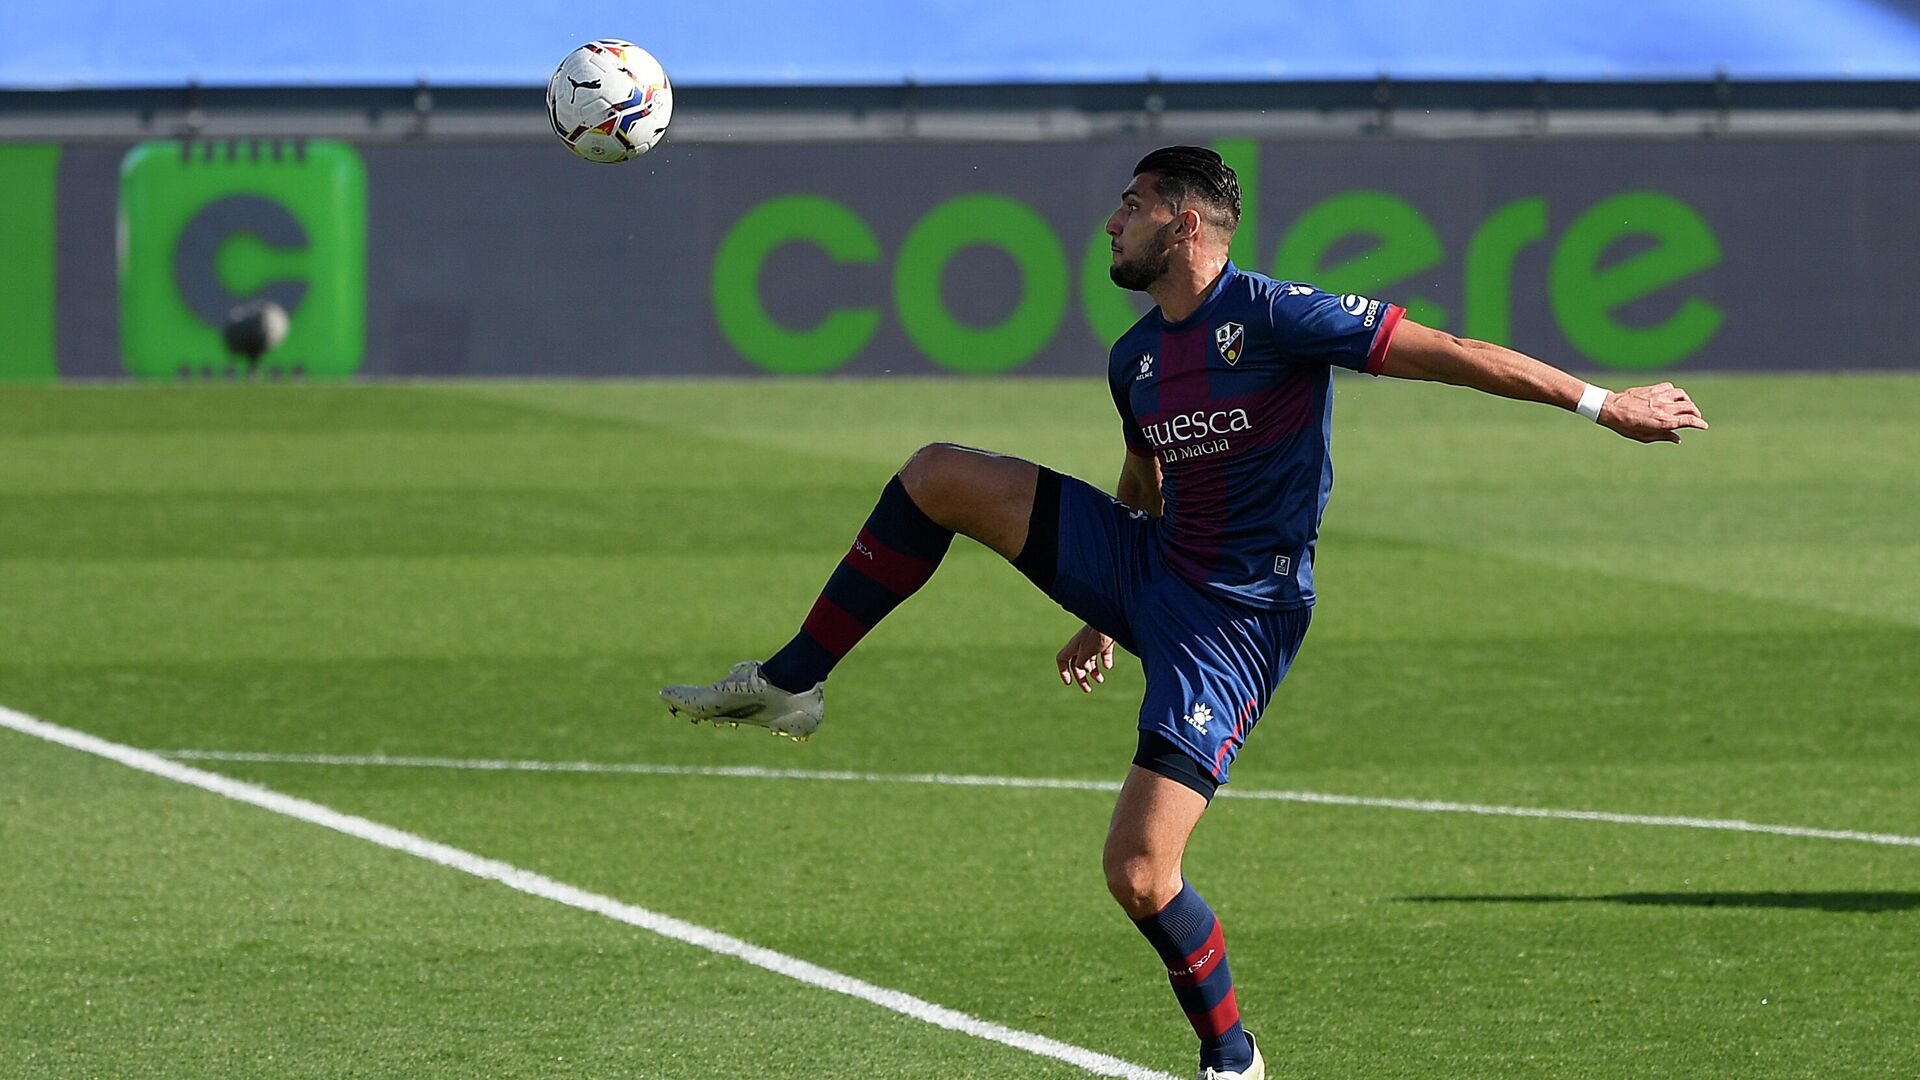 Huesca's Spanish forward Rafa Mir controls the ball during the Spanish League football match between Real Madrid and SD Huesca at the Alfredo Di Stefano stadium in Valdebebas, northeastern Madrid, on October 31, 2020. (Photo by OSCAR DEL POZO / AFP) - РИА Новости, 1920, 30.01.2021